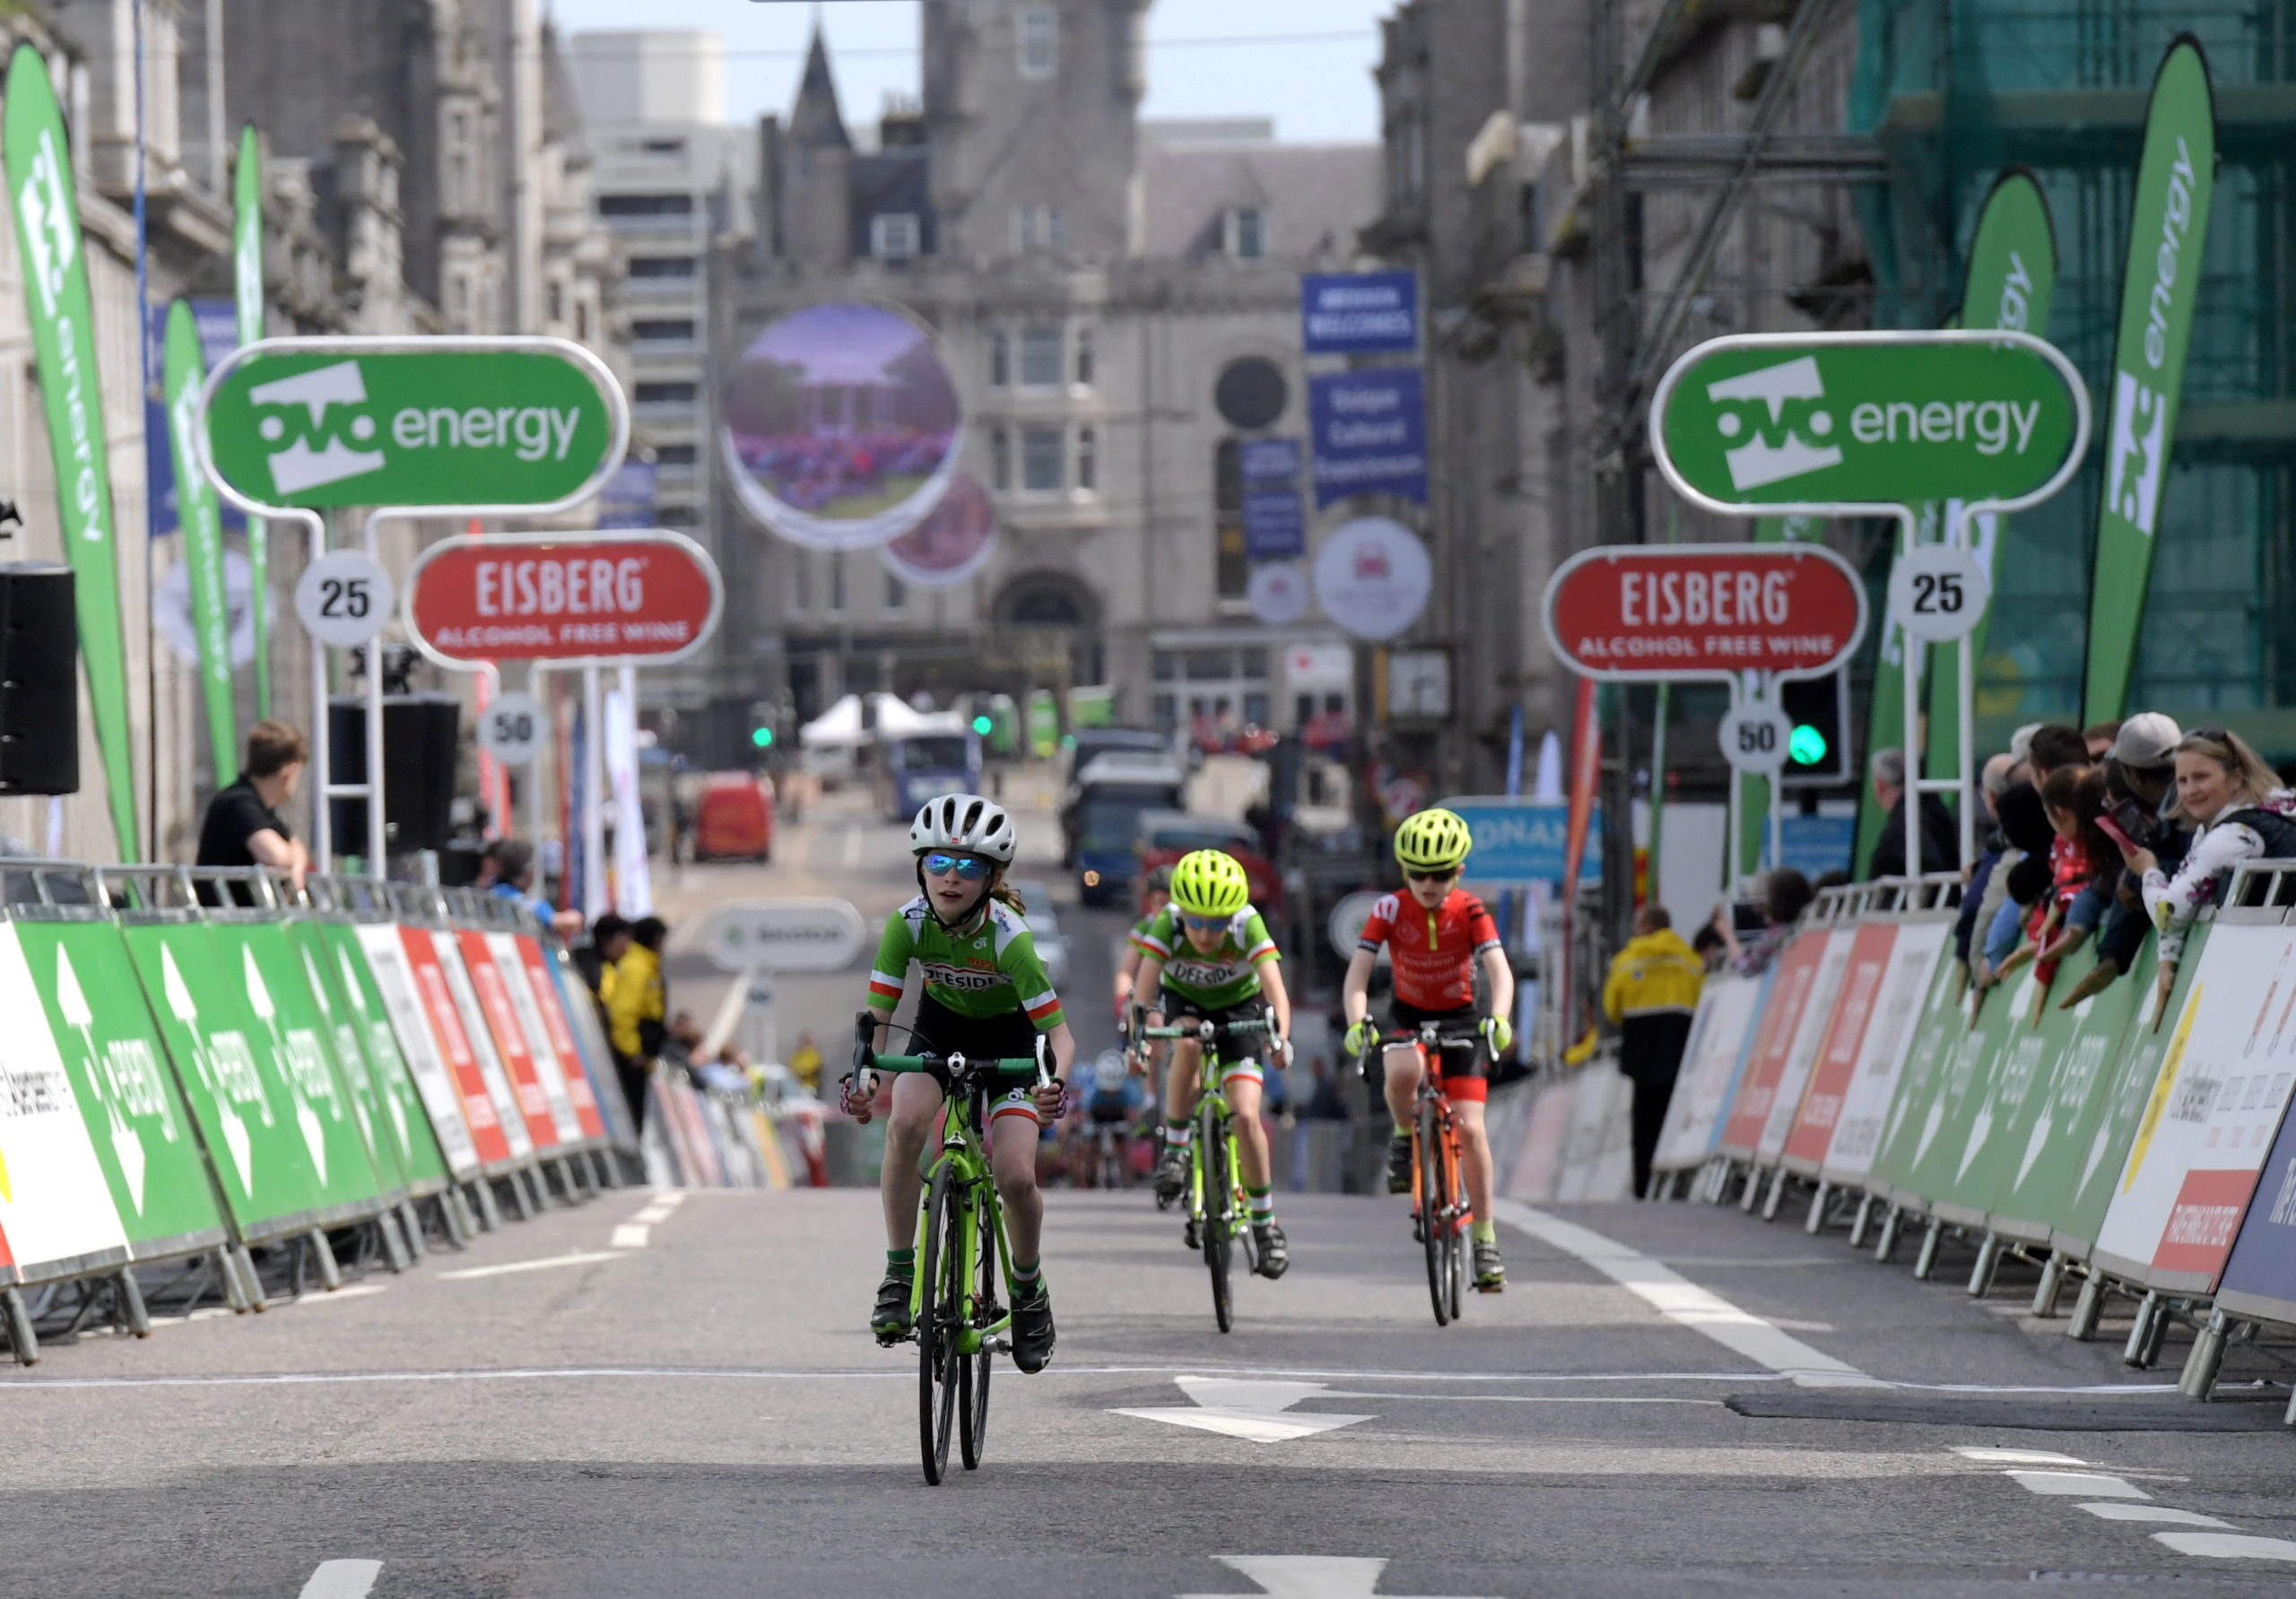 The smaller-scale Tour Series events held in Aberdeen over the past three years have been hugely successful.